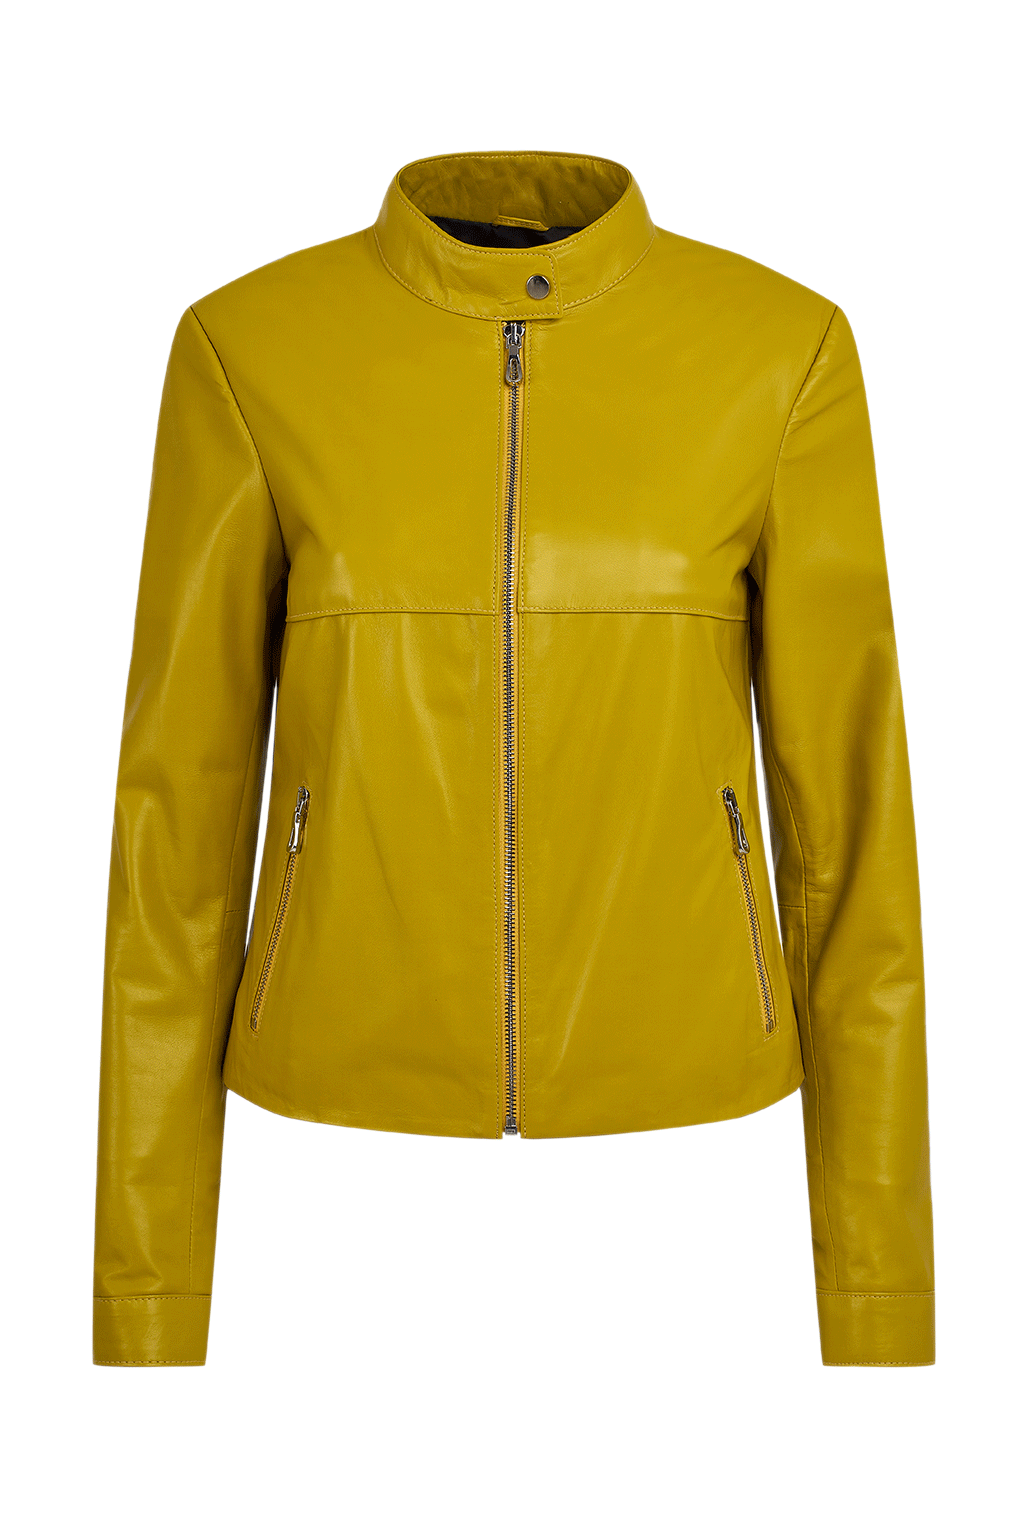 Women's Petite Leather Jacket - Yellow